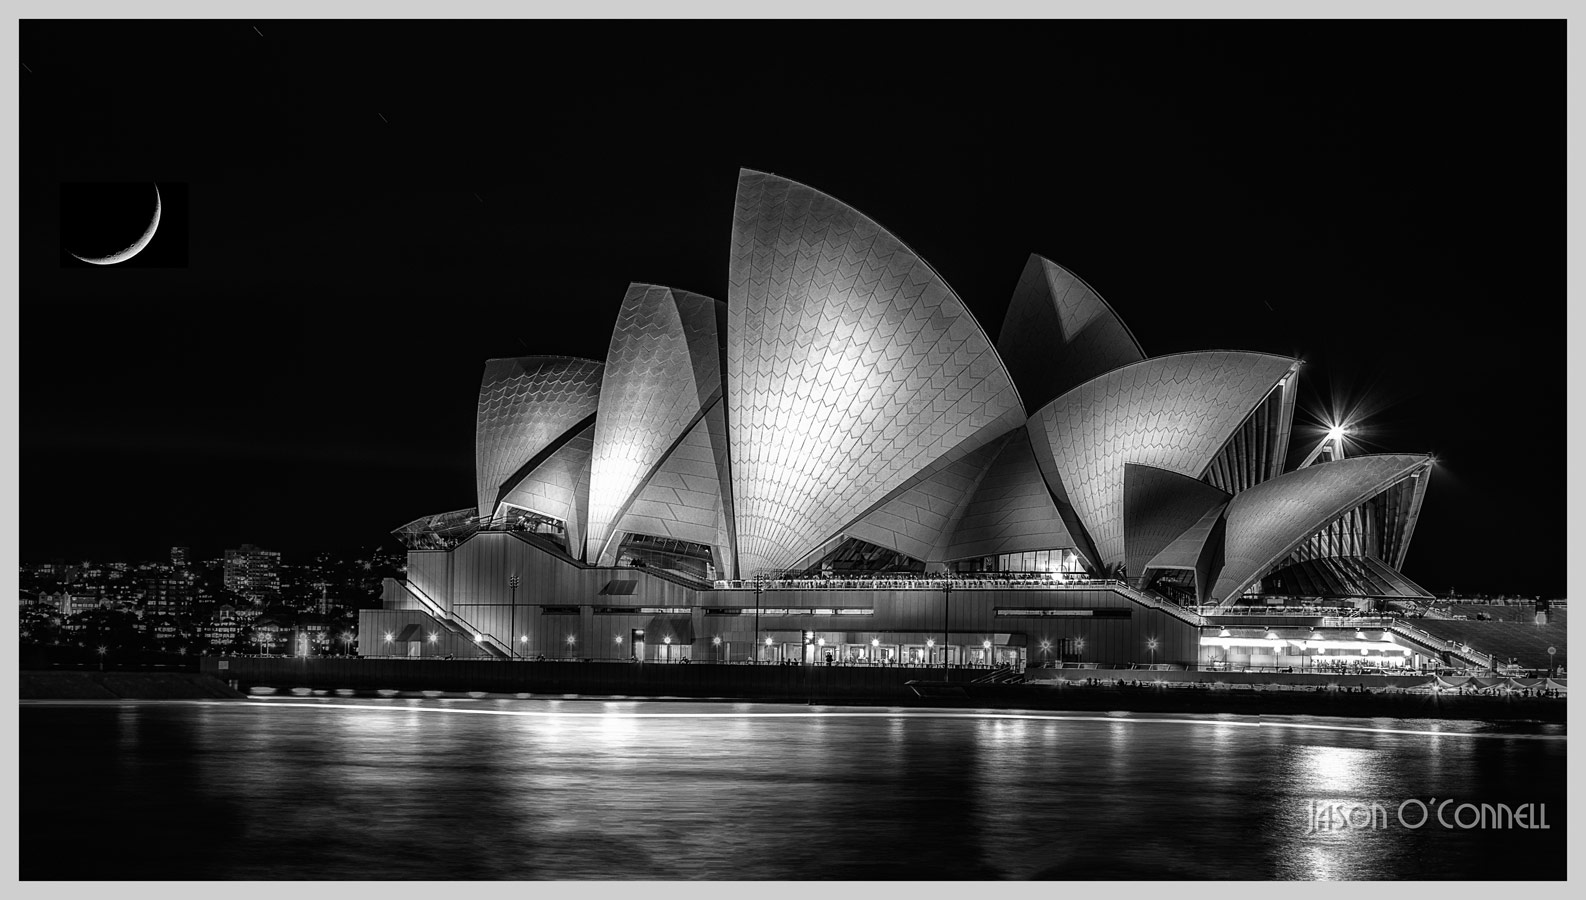 Crescent Moon by Sydney's Opera House, © Jason O'Connell, Canada, Filter: PL/ND, Cityscape Photography x Filter Photo Contest - Marumi